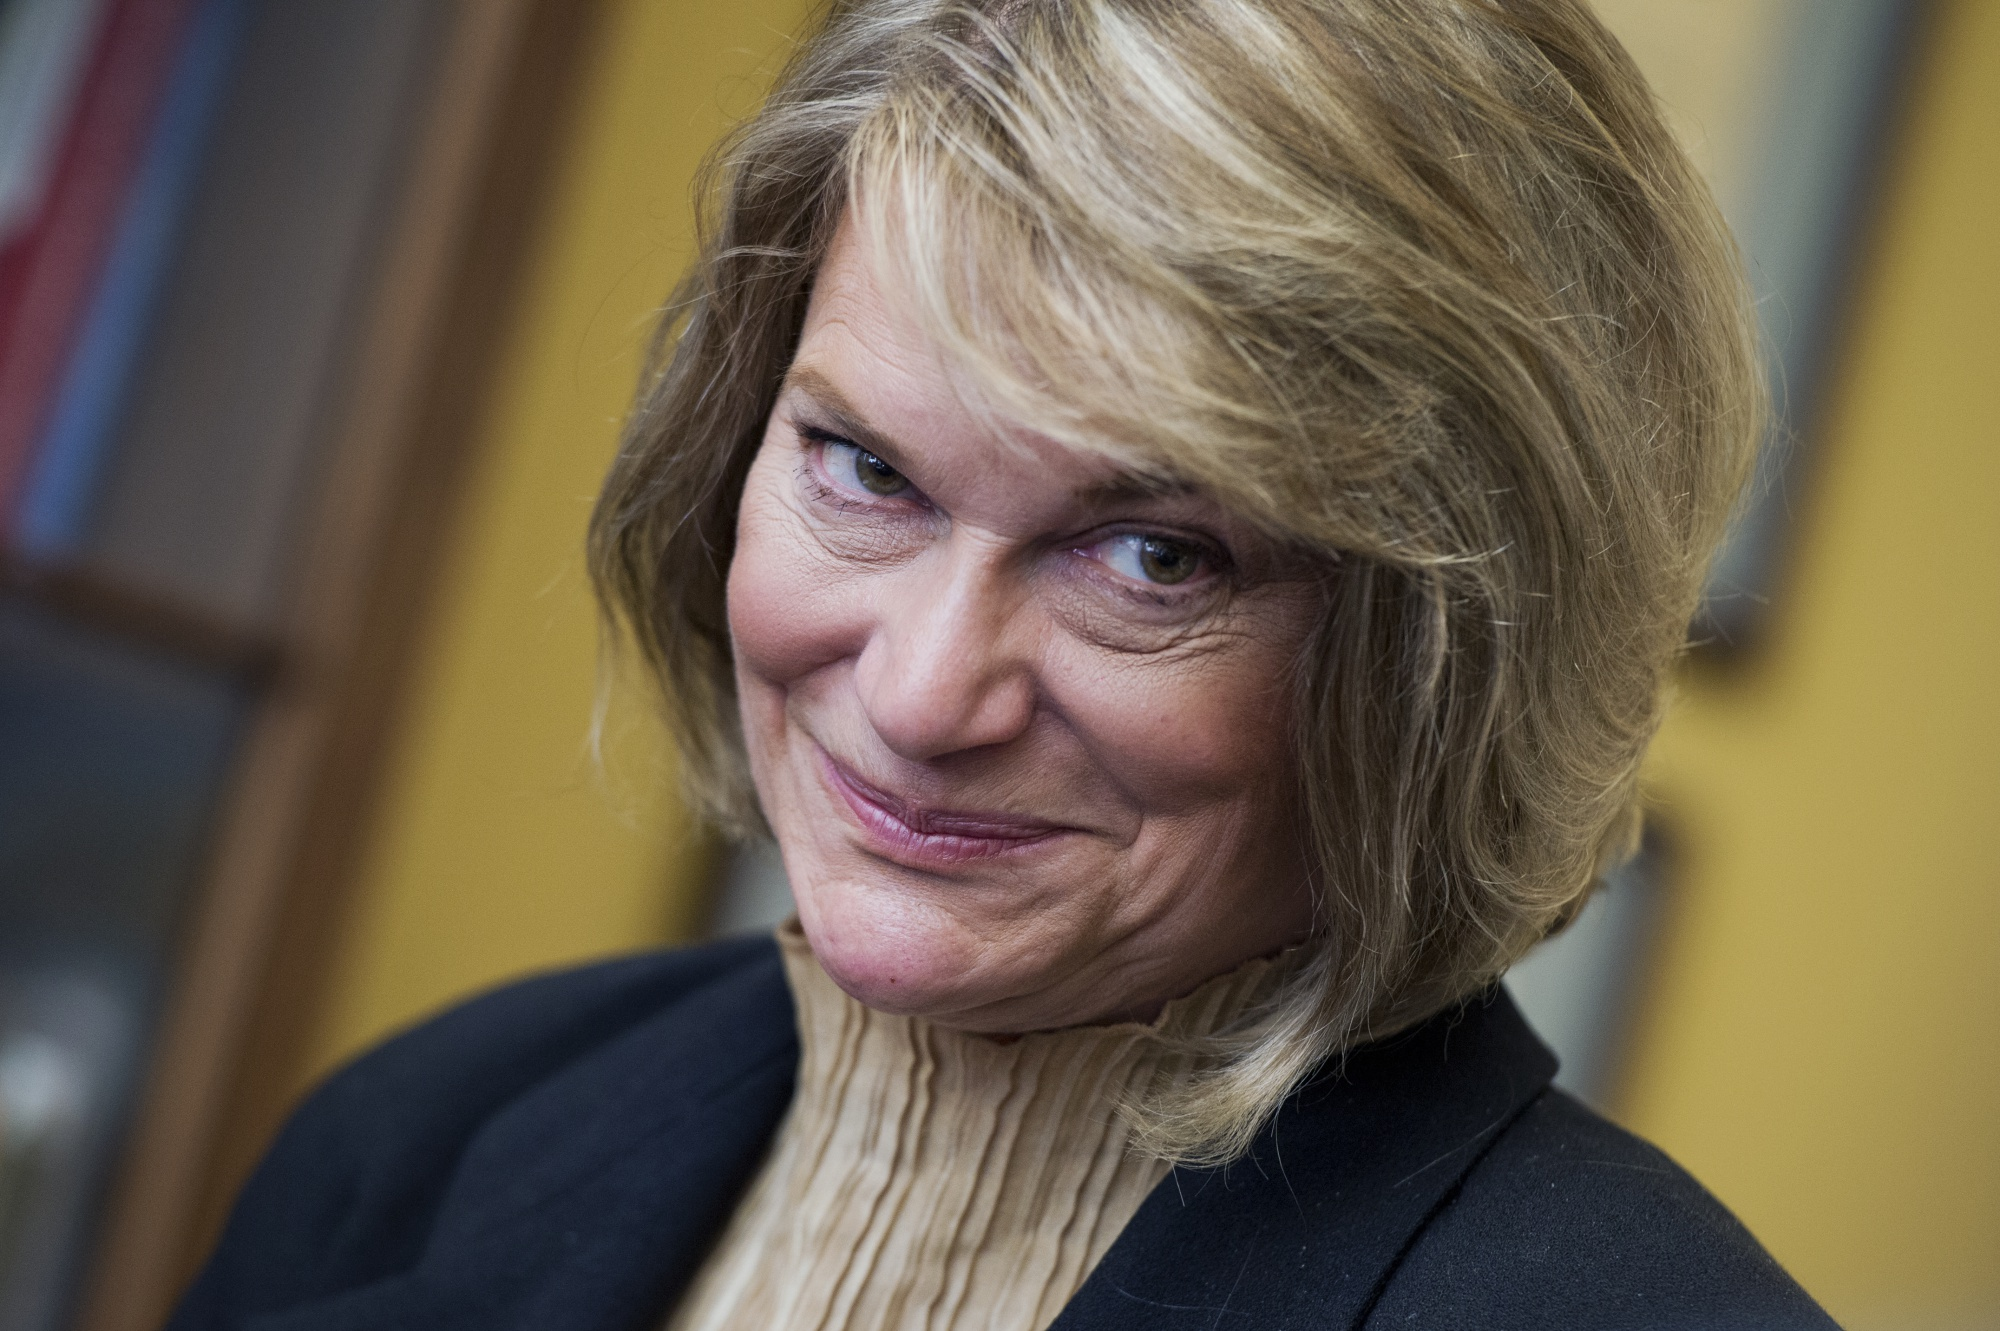 White House Considering Cynthia Lummis for Interior Sec.: Sources - Bloomberg